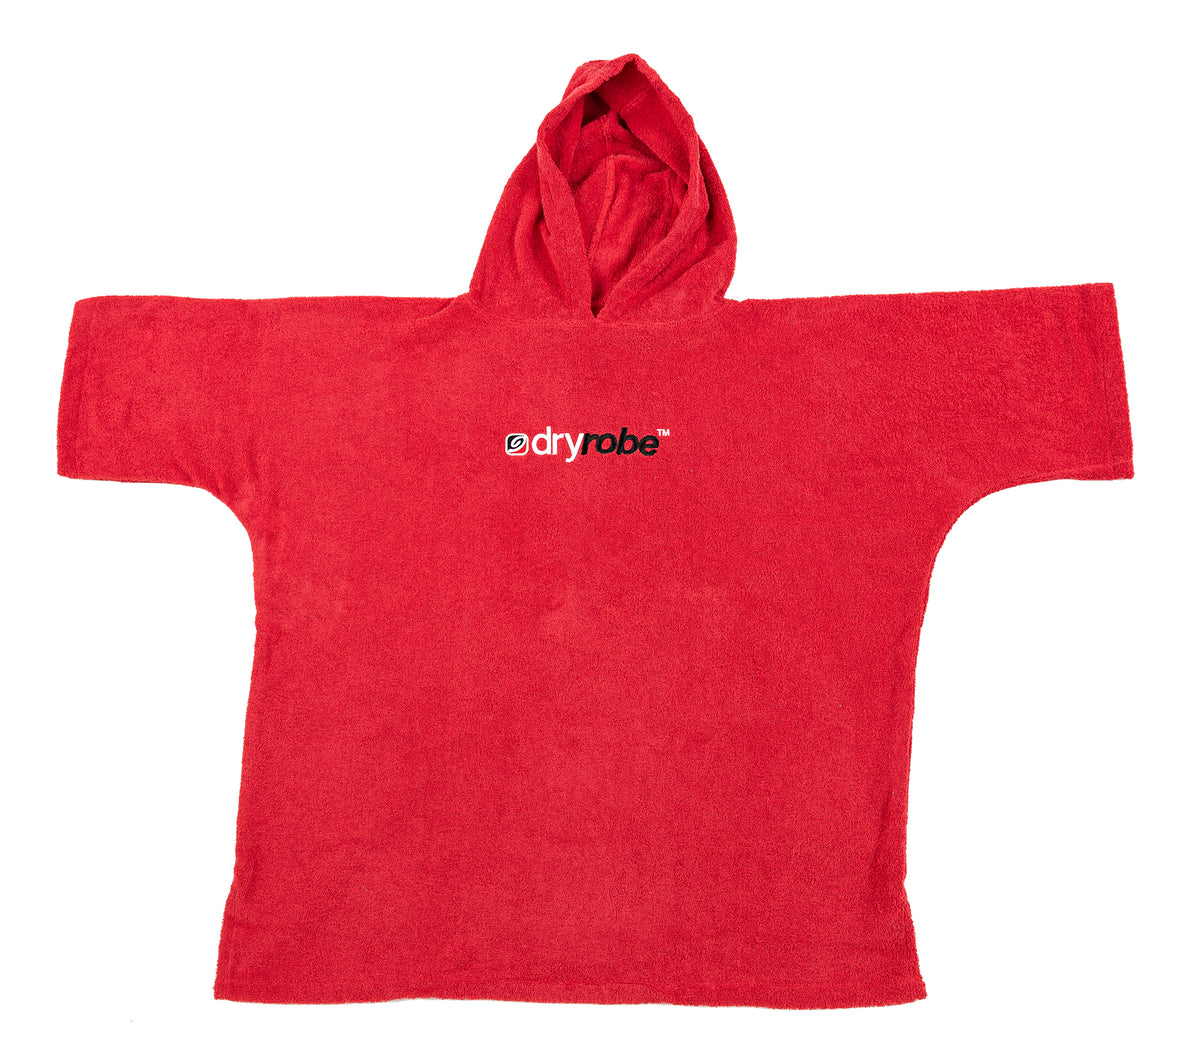 XS,S, Kids Organic Cotton Towel dryrobe Red Flat